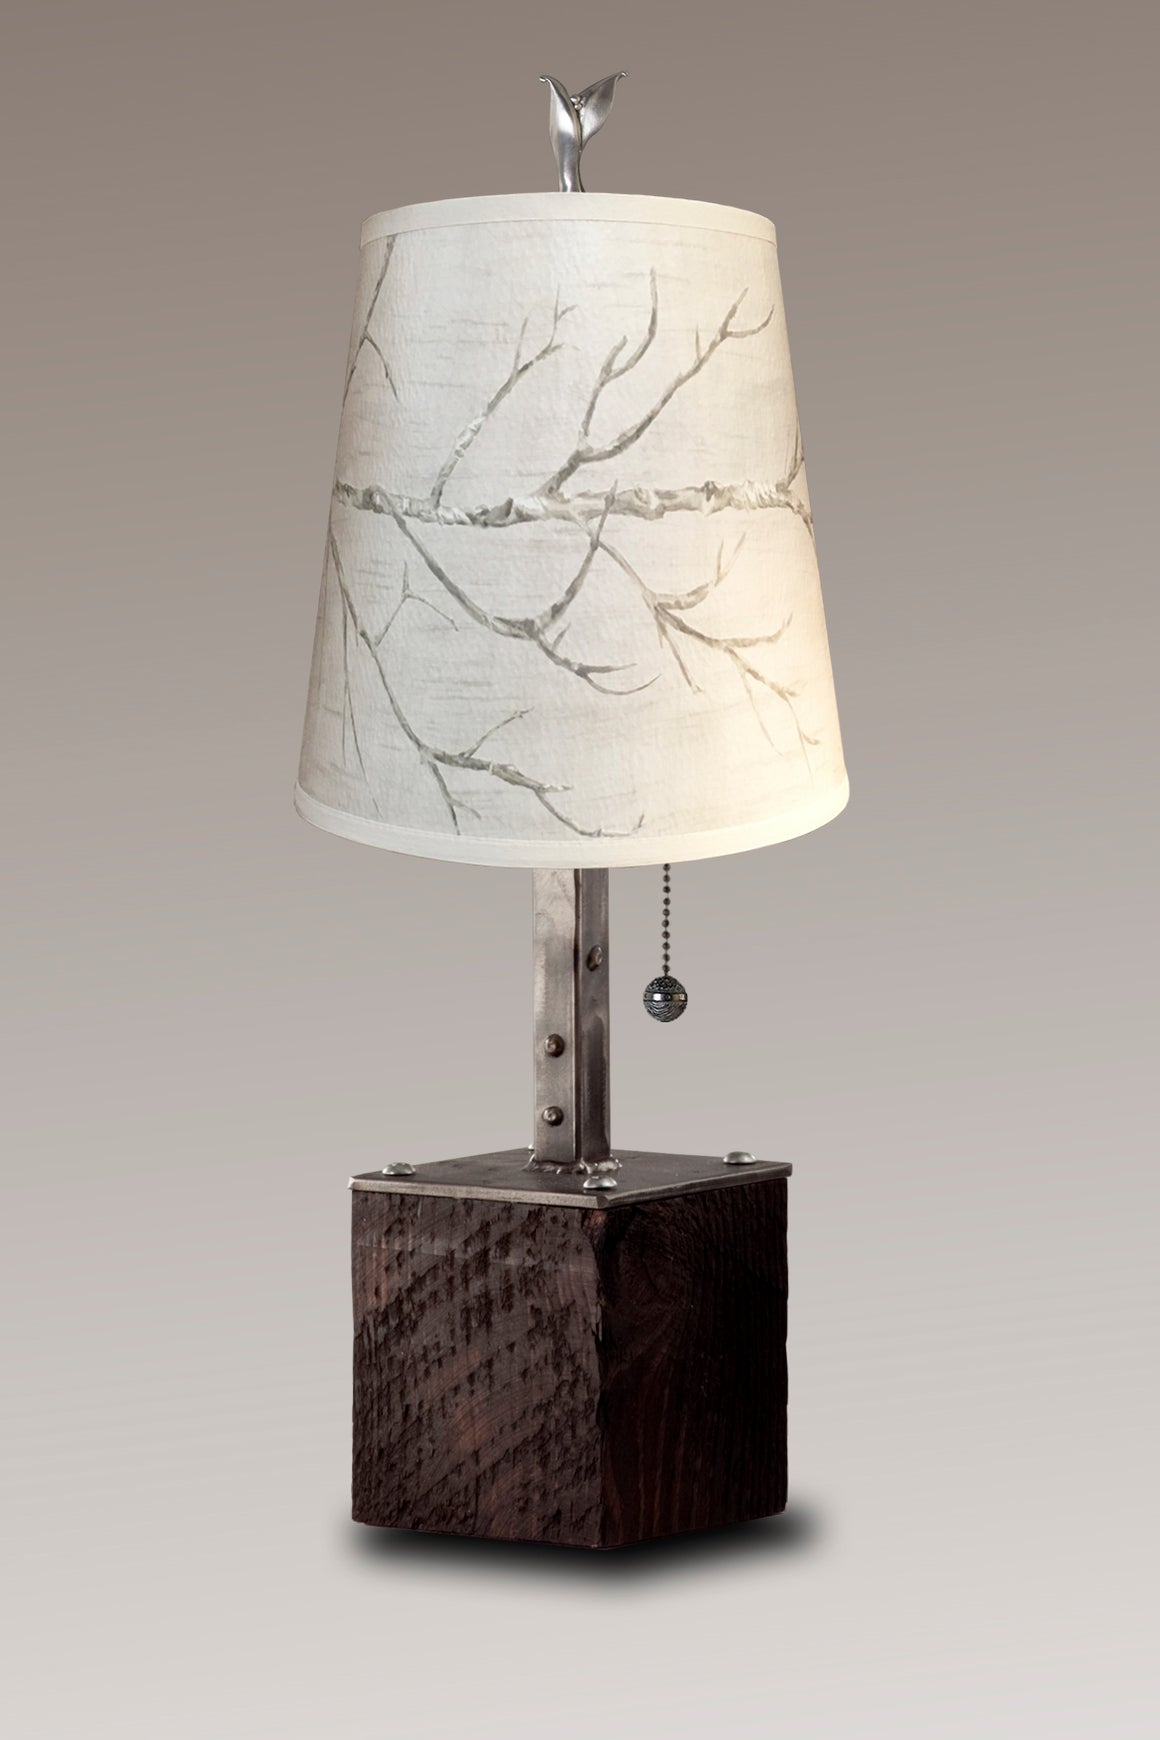 Steel Table Lamp on Reclaimed Wood with Small Drum Shade in Sweeping Branch